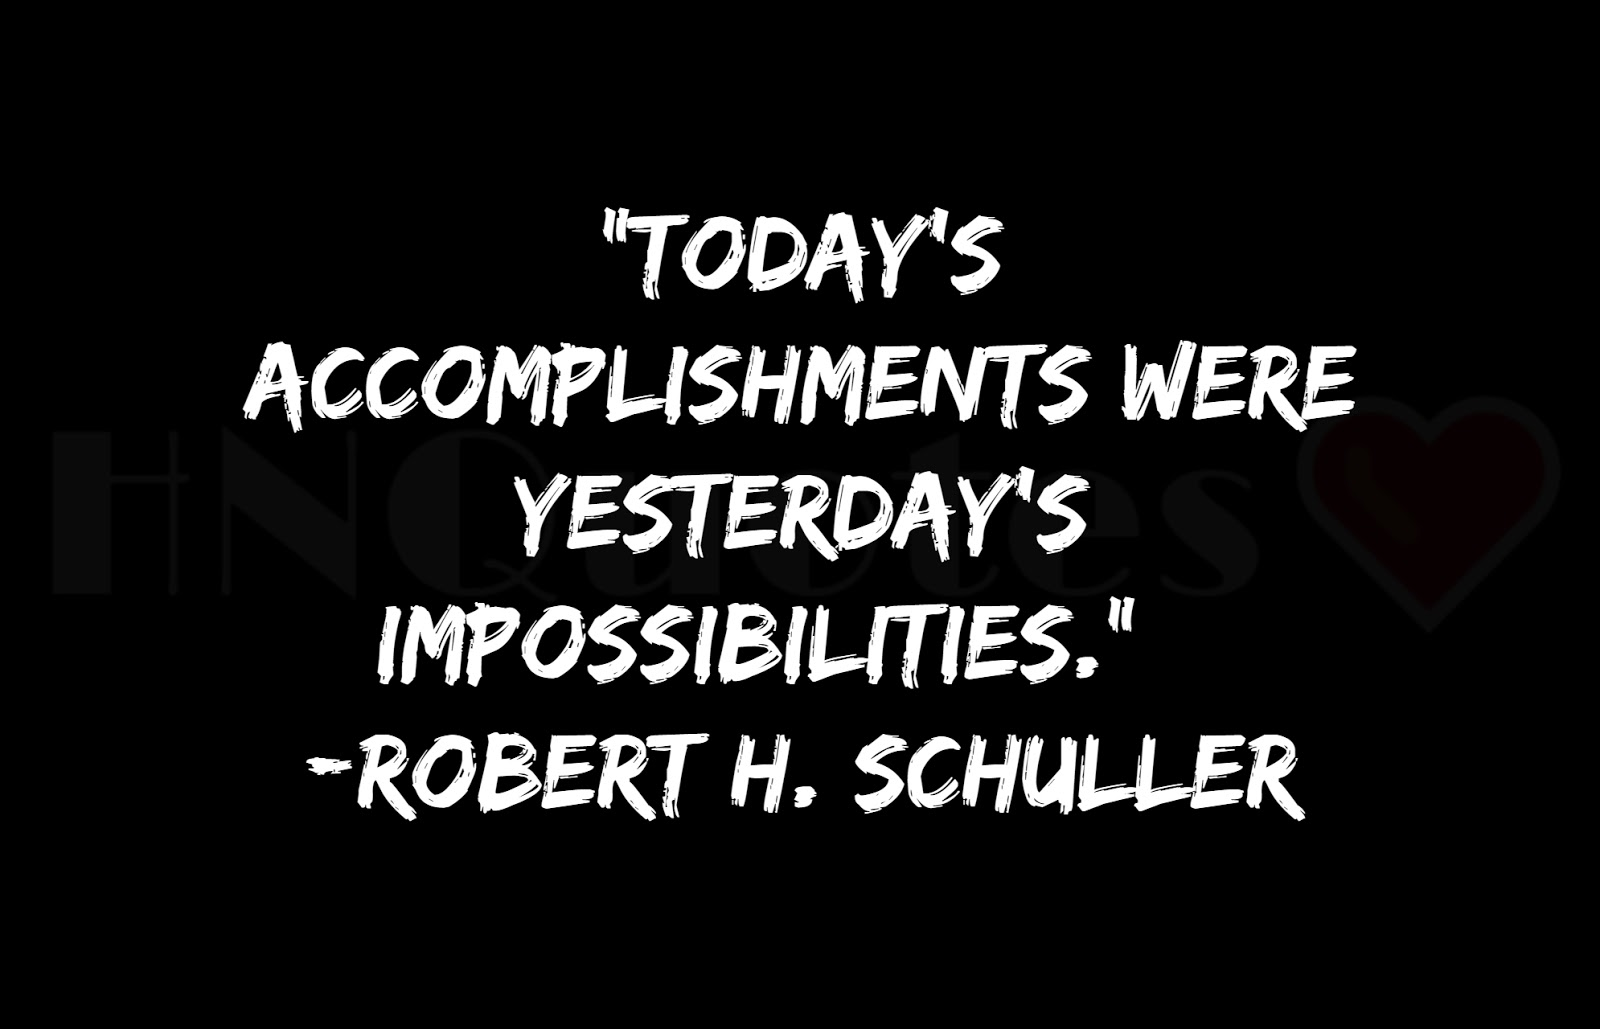 Inspirational-Quotes-on-Life-76-[HNQuotes]